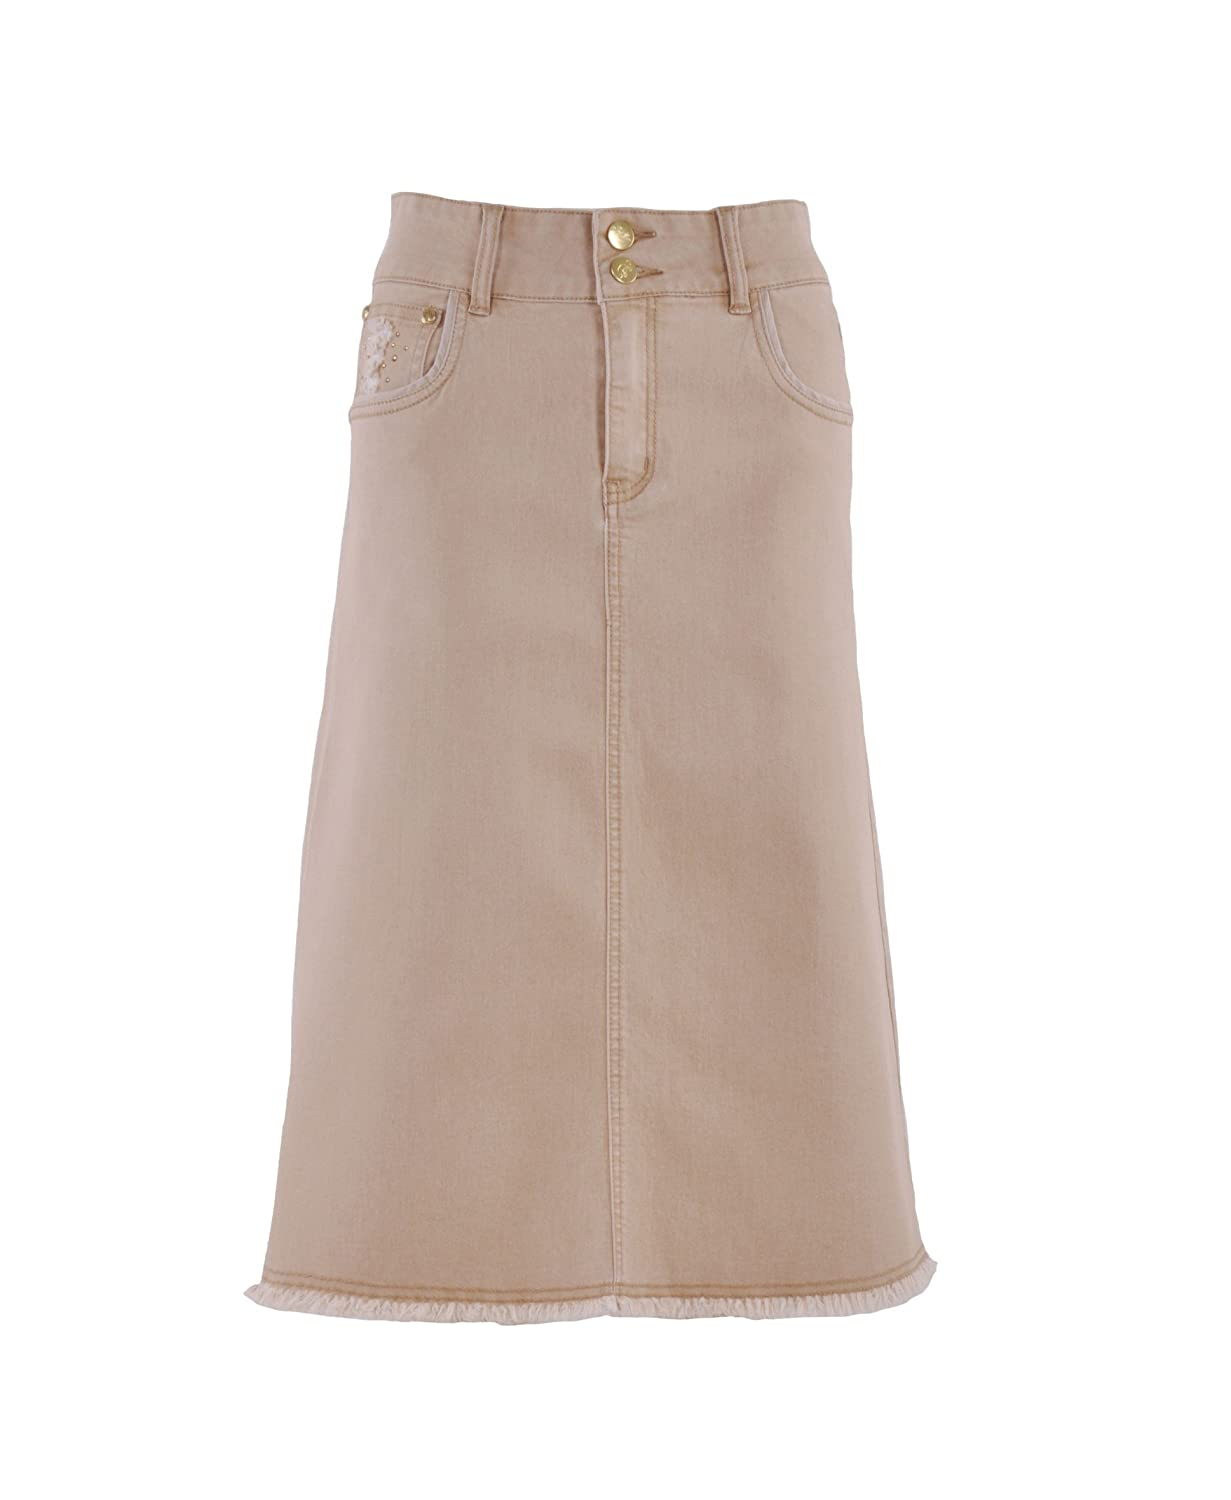 Style J Khaki Queen Denim Skirt at Amazon Women's Clothing store: